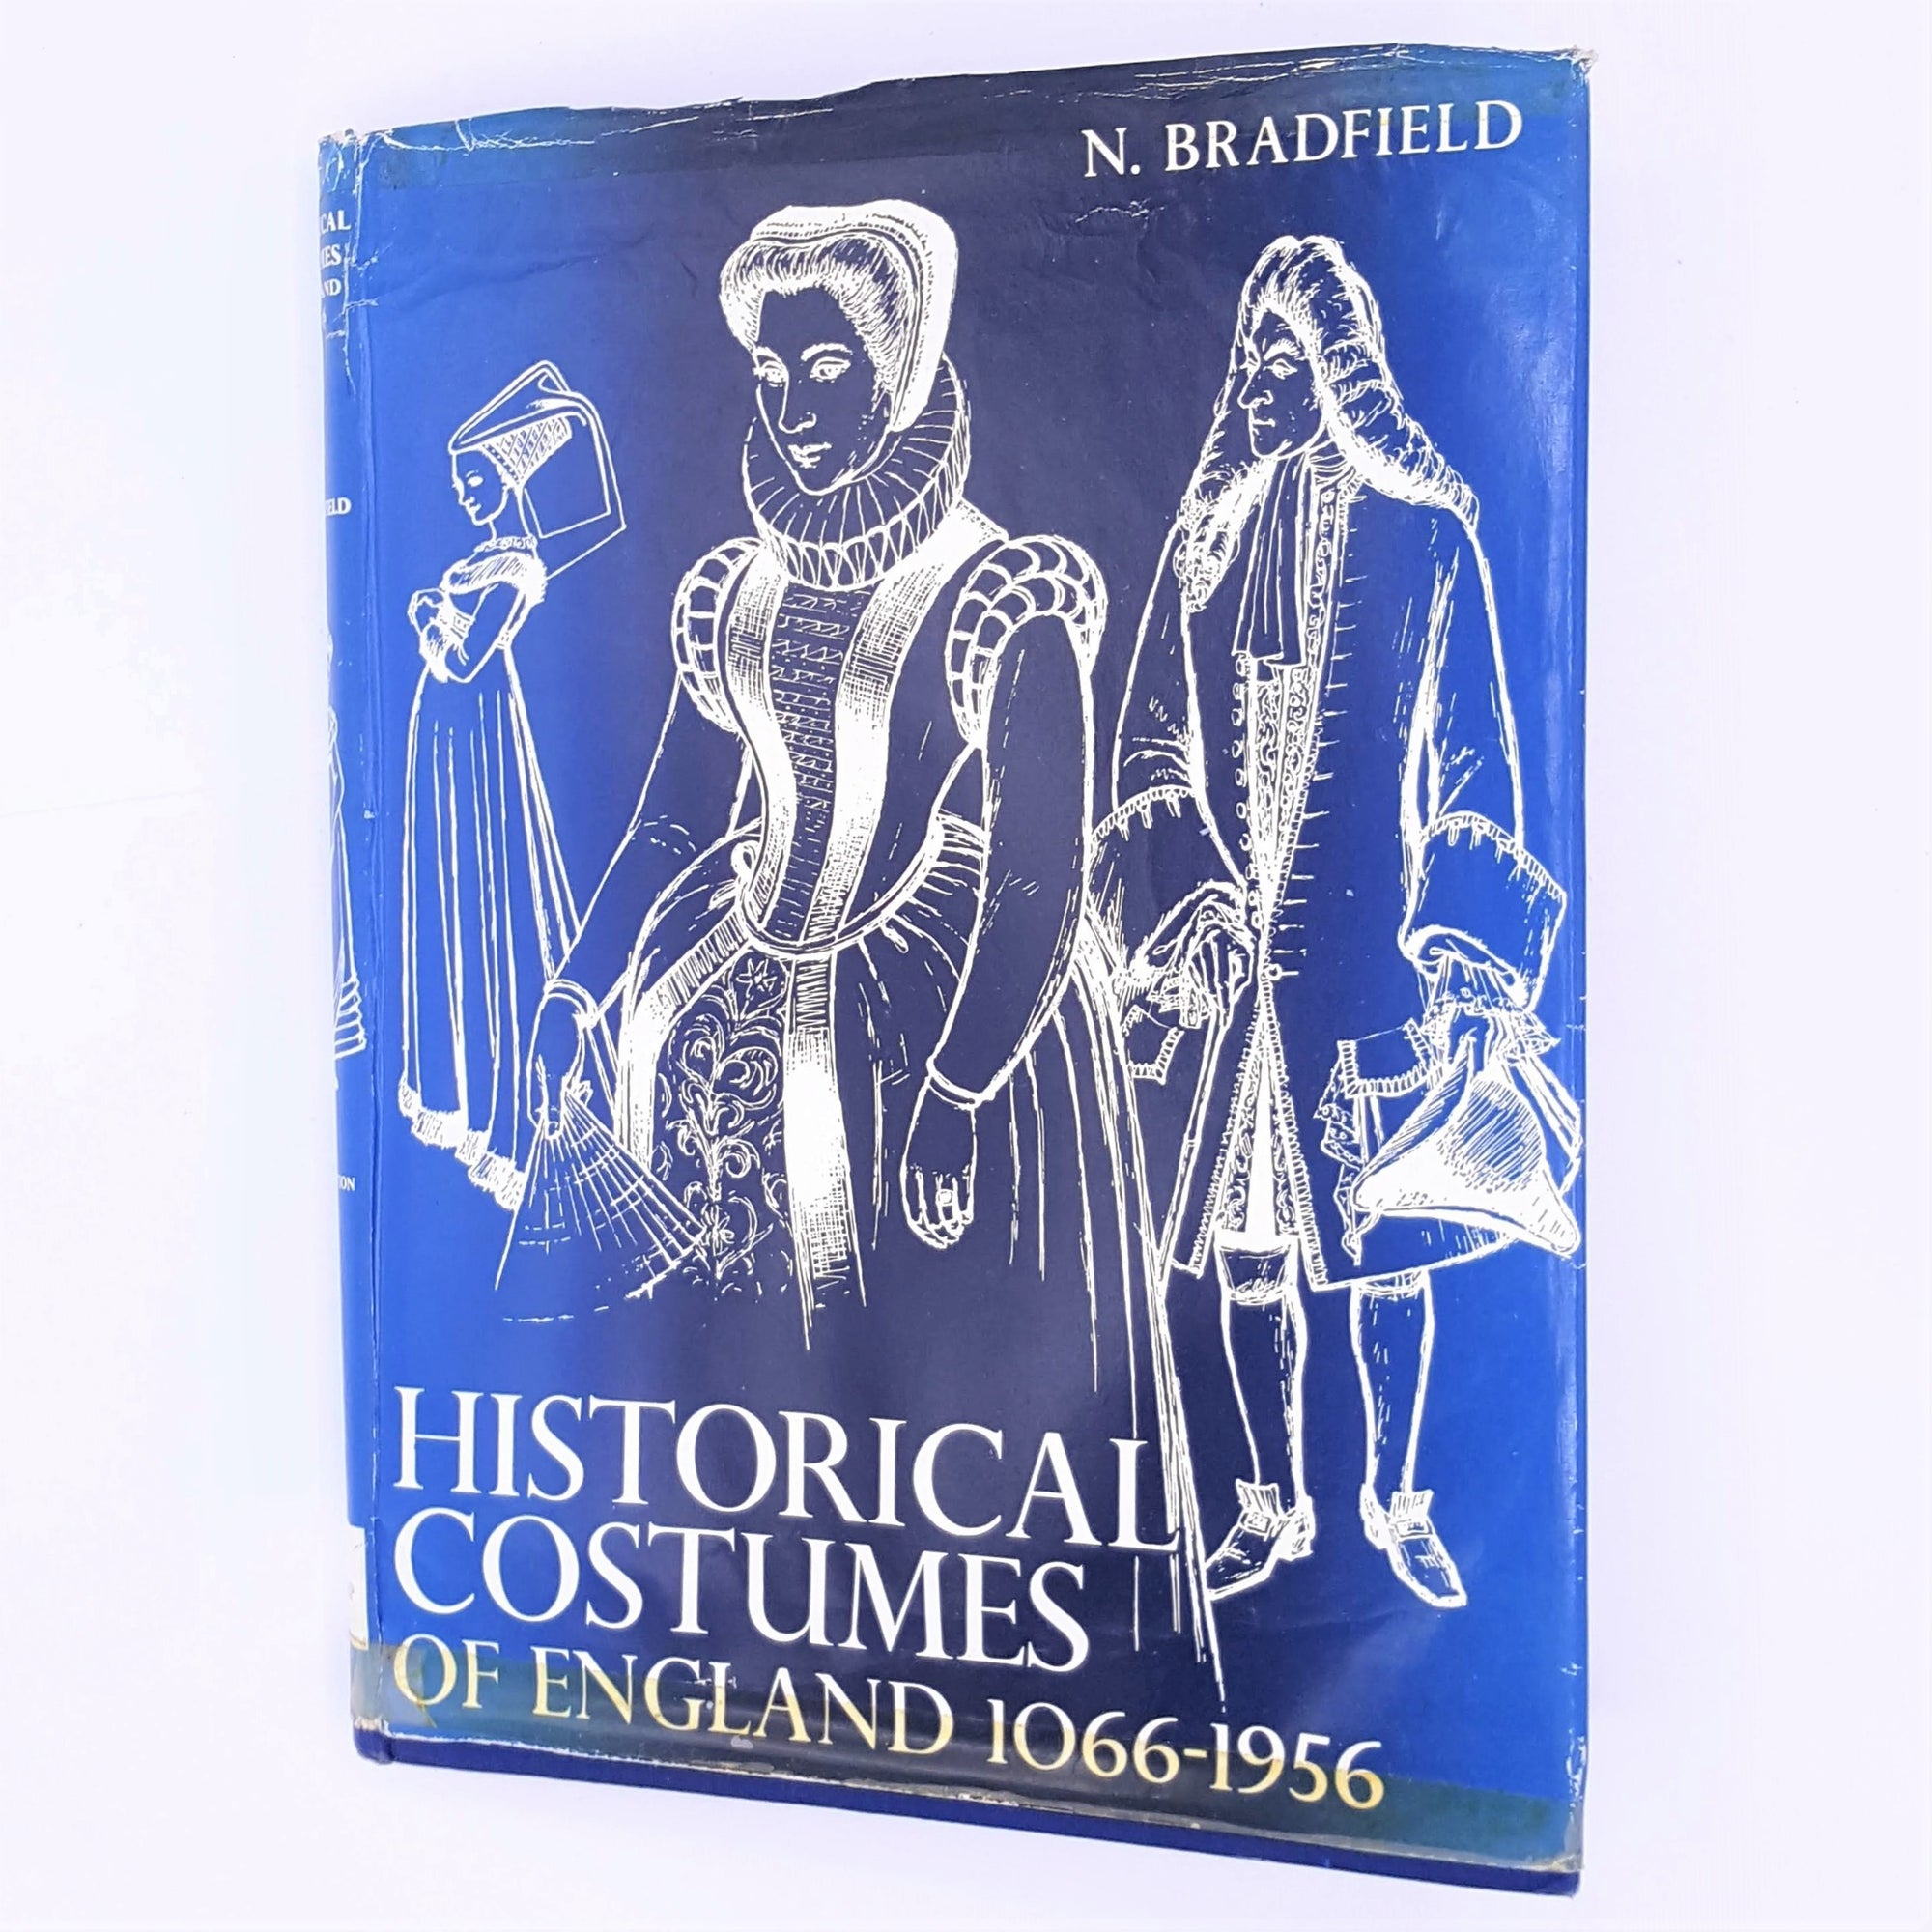 Historical Costumes of England 1958